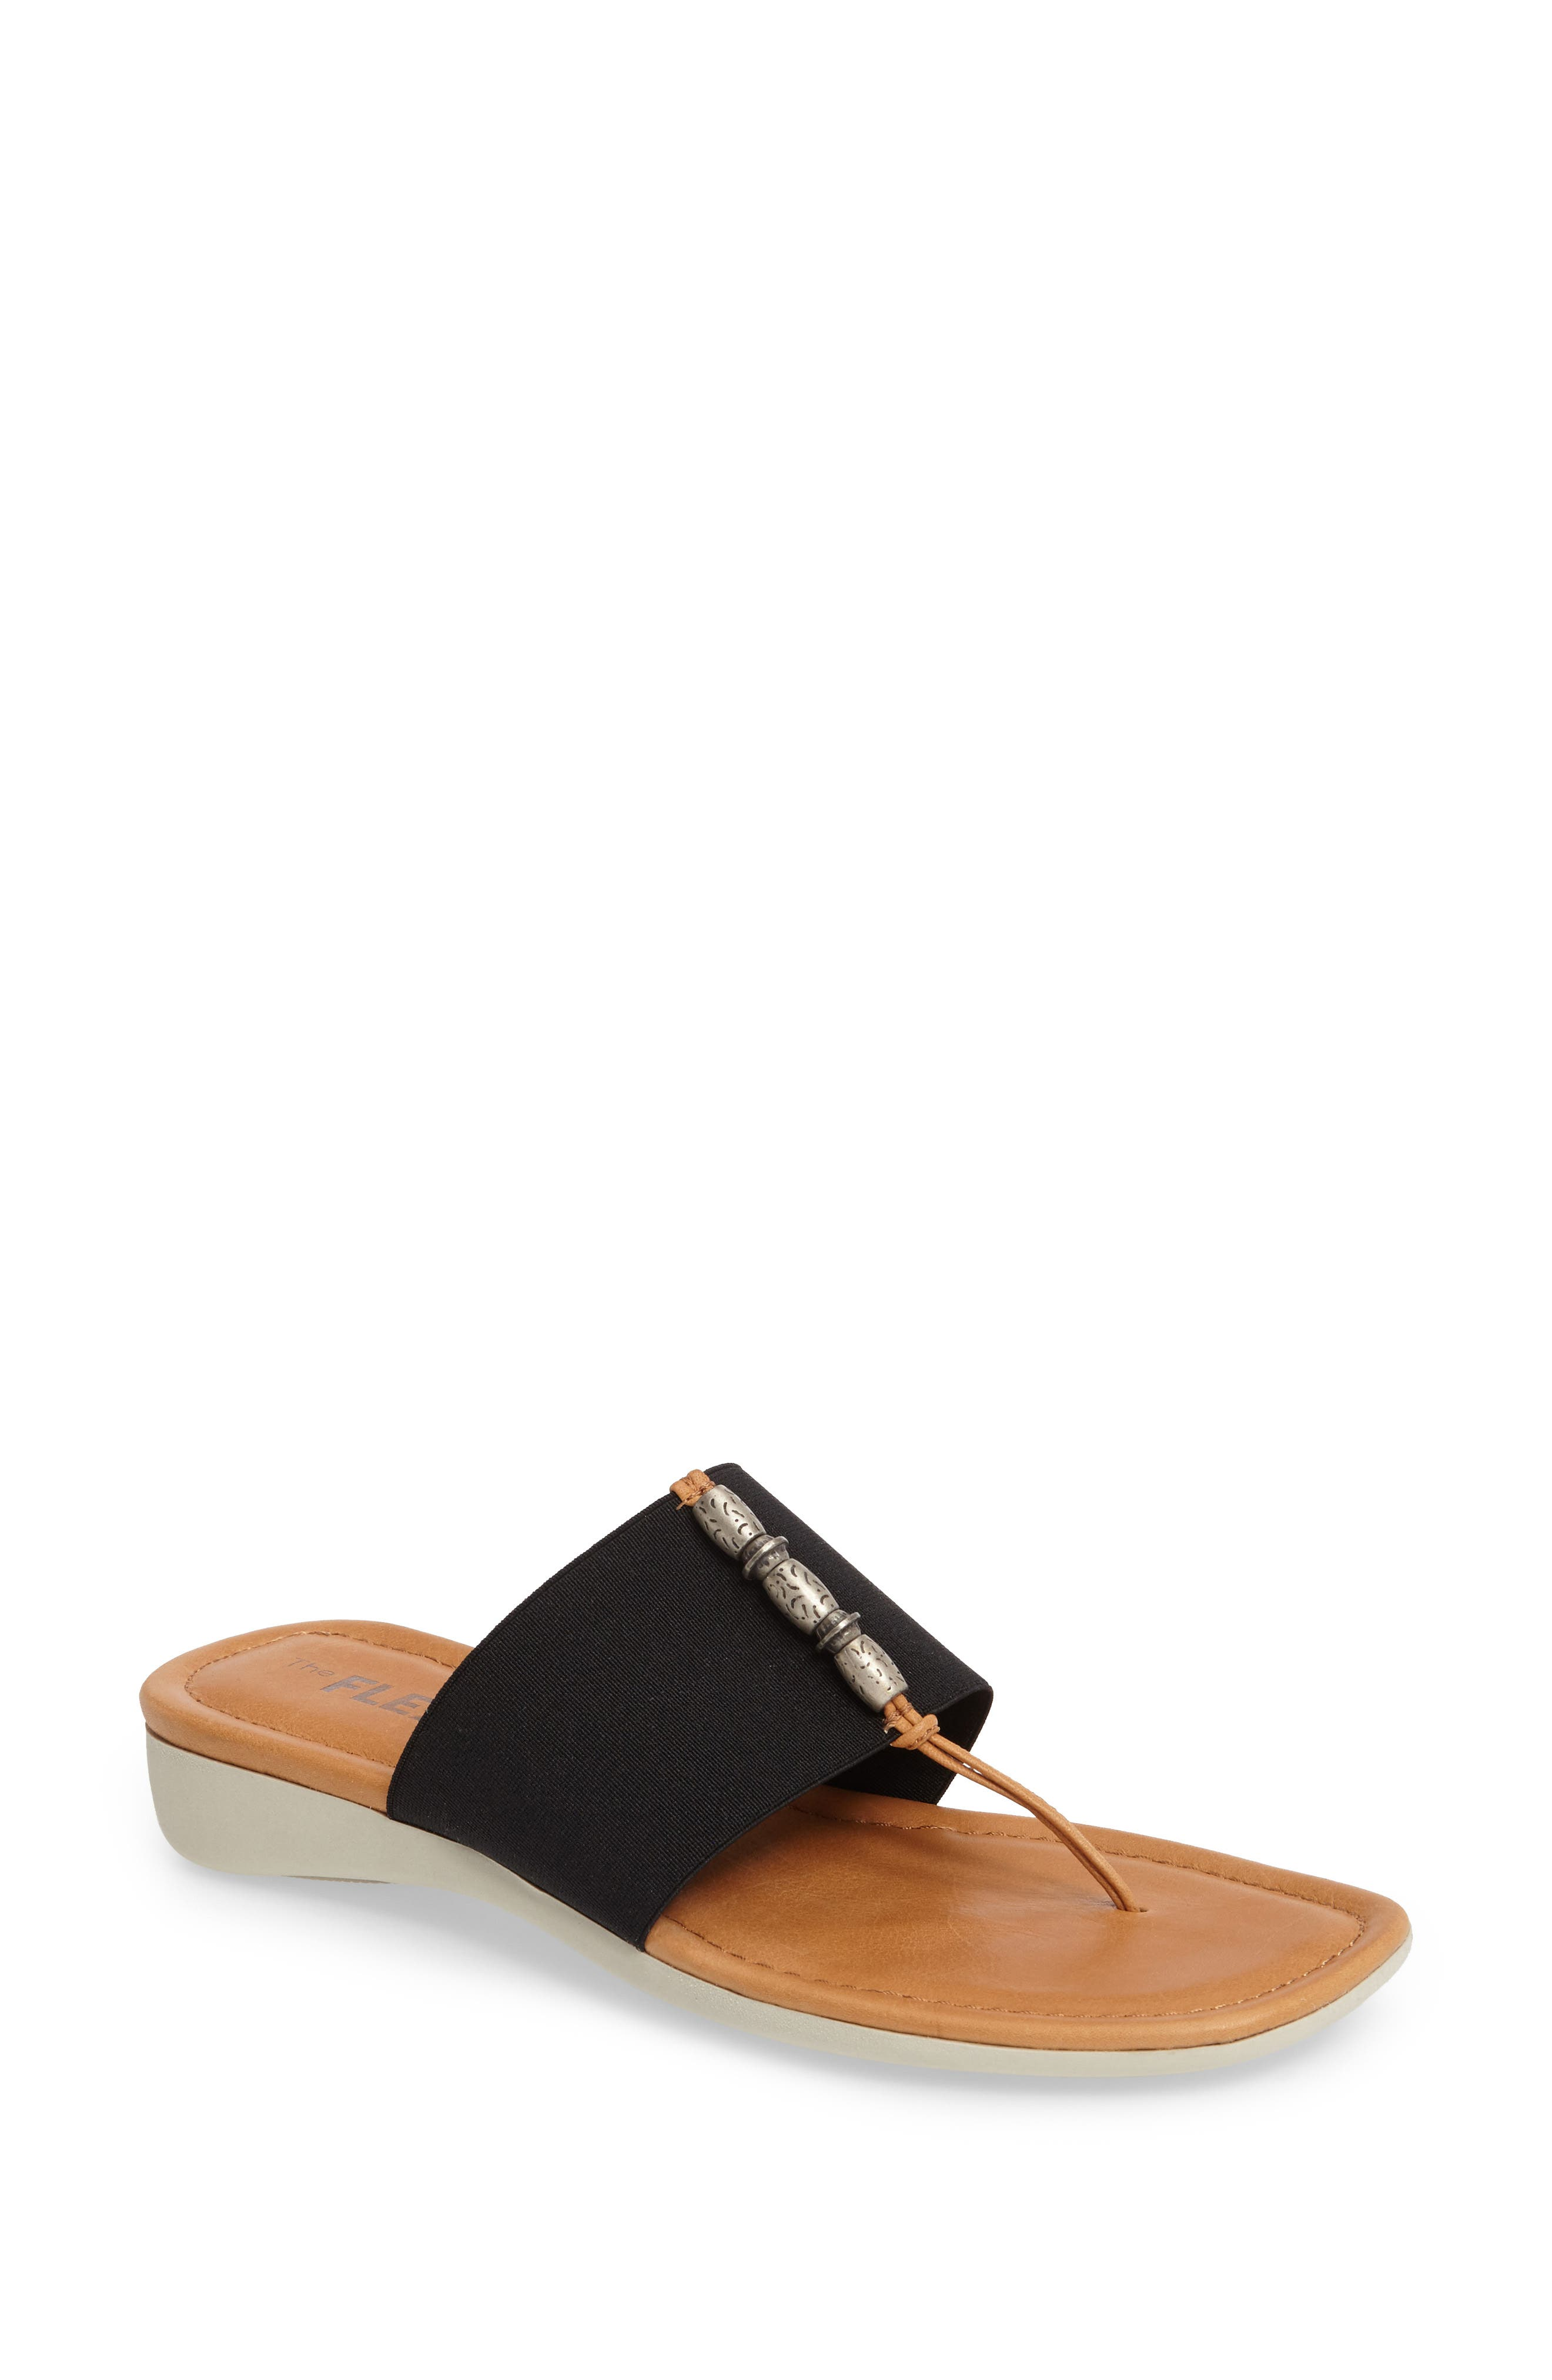 Main Image - The FLEXX Rain Maker Sandal (Women)